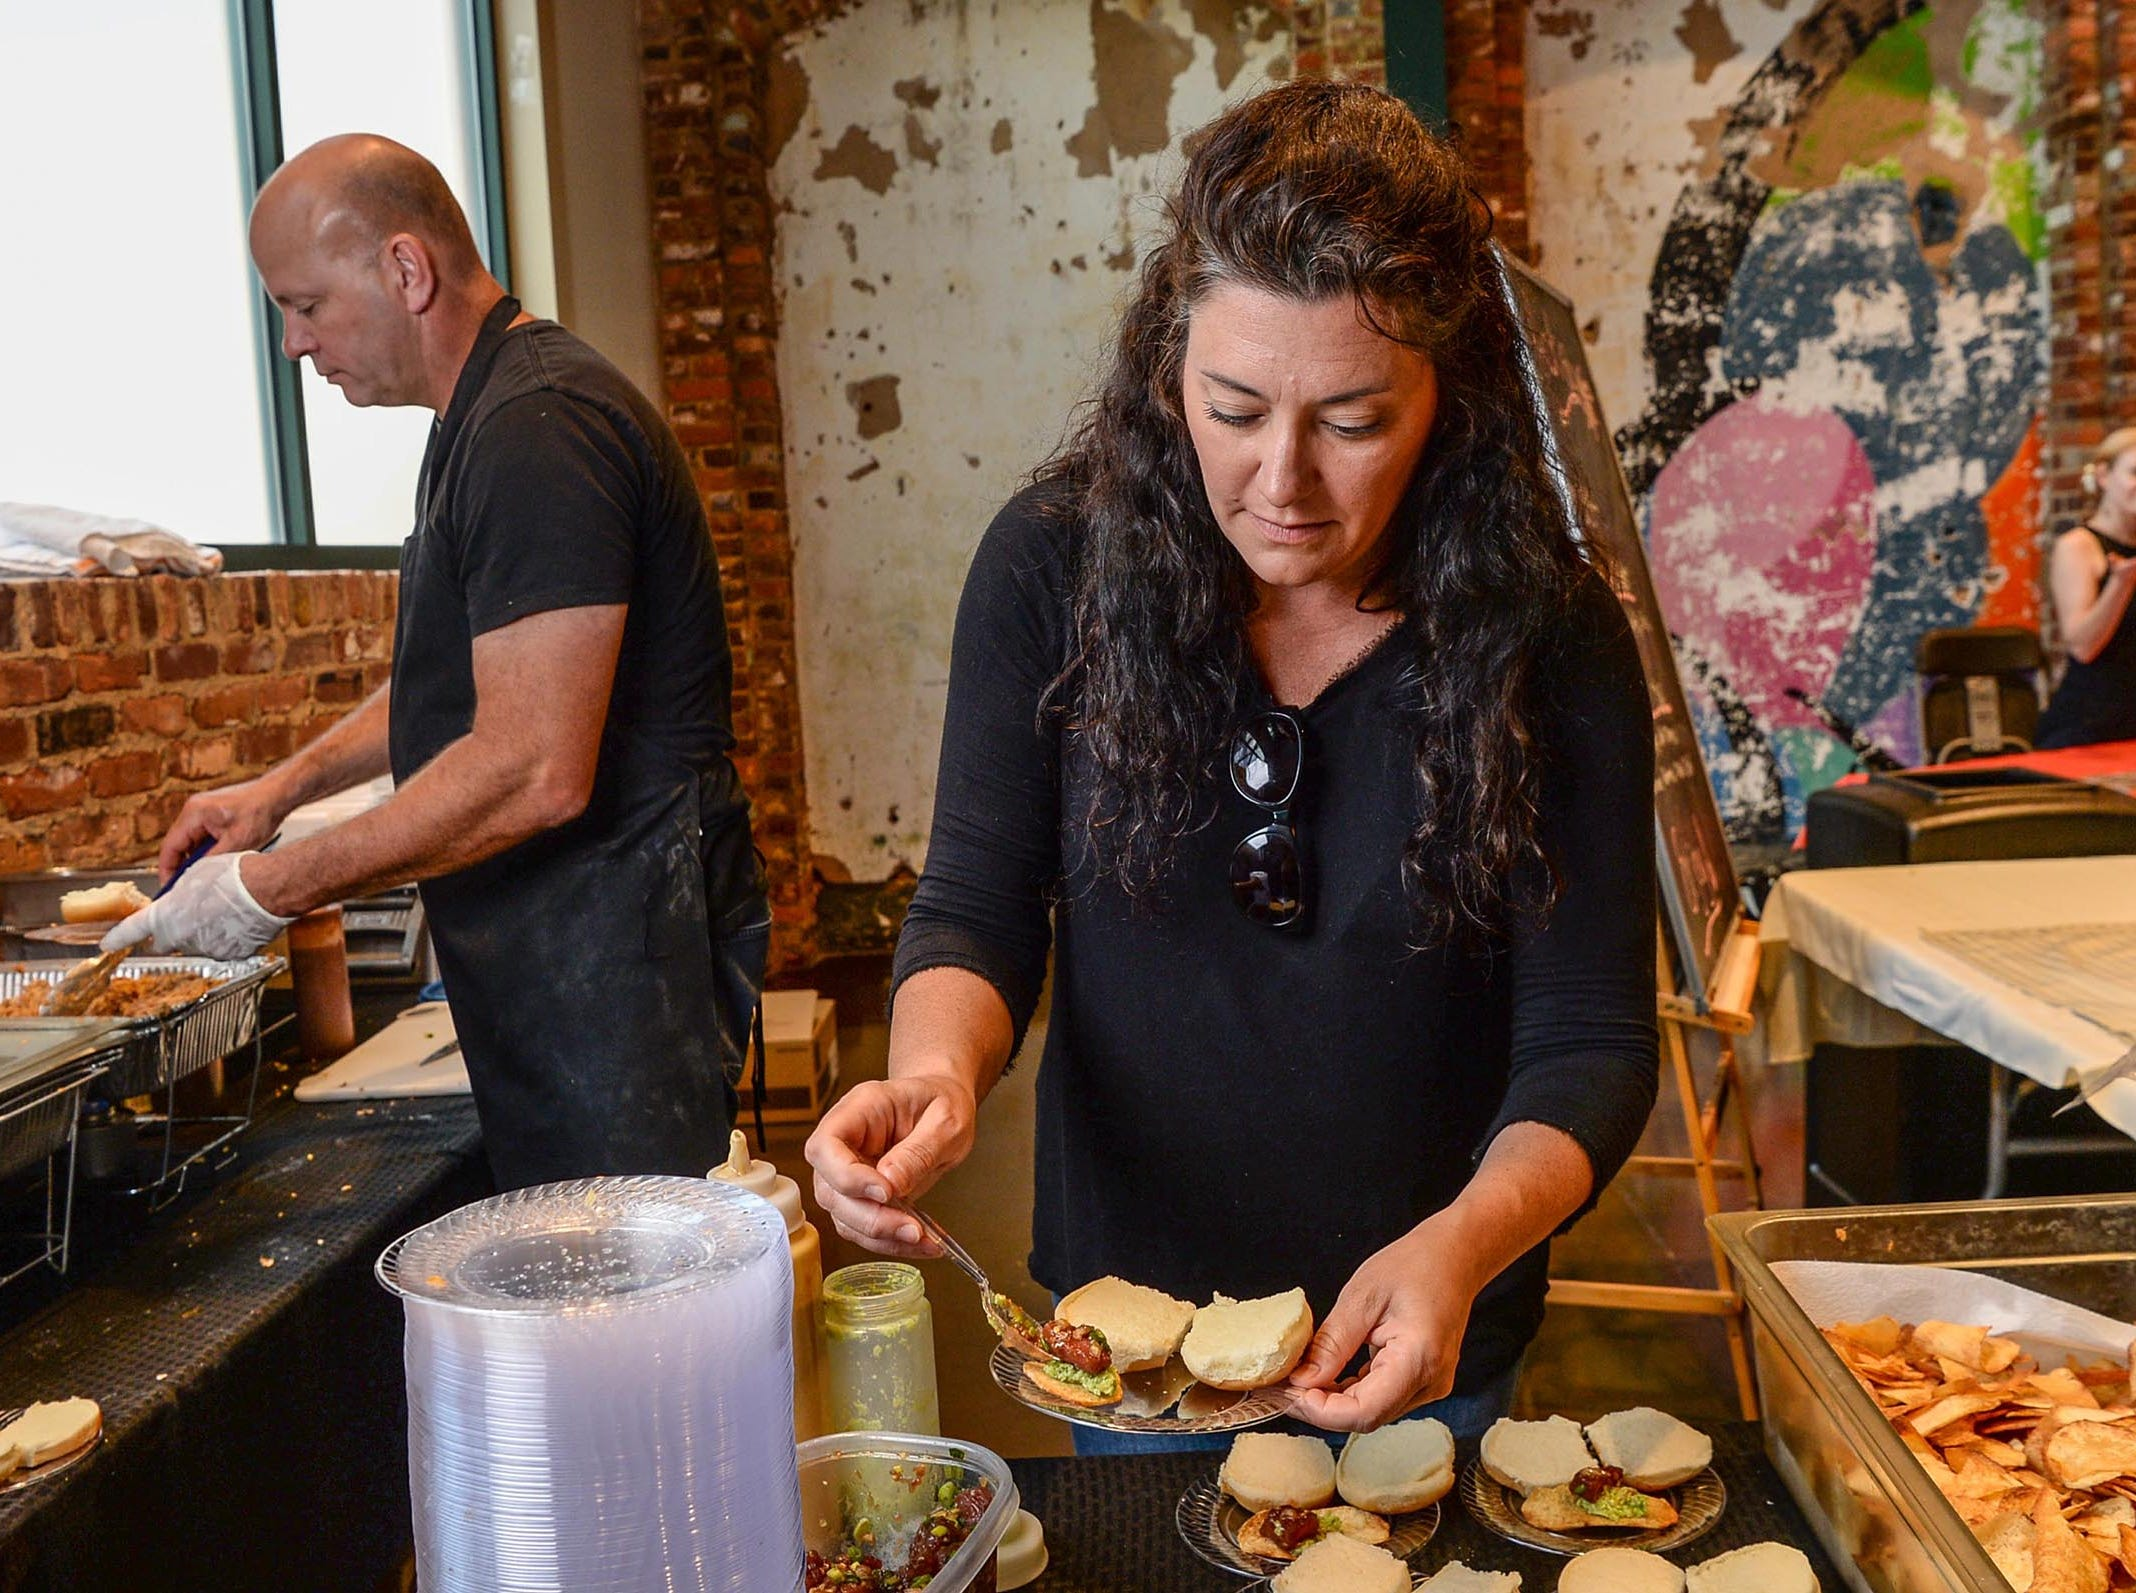 Jennifer Hawkins, right, and Erick Omick, left, of Sadler's Creek BBQ in Anderson create plates with The Kahlua Pig Slider with Kimchee pineapple salsa and Ahi Poke Chip with sauce during the Anderson Area YMCA Ralph Hayes Toyota Taste of Anderson at The Bleckley Station Tuesday. Proceeds from the Aloha theme party benefit programs and services of the Anderson Area YMCA.